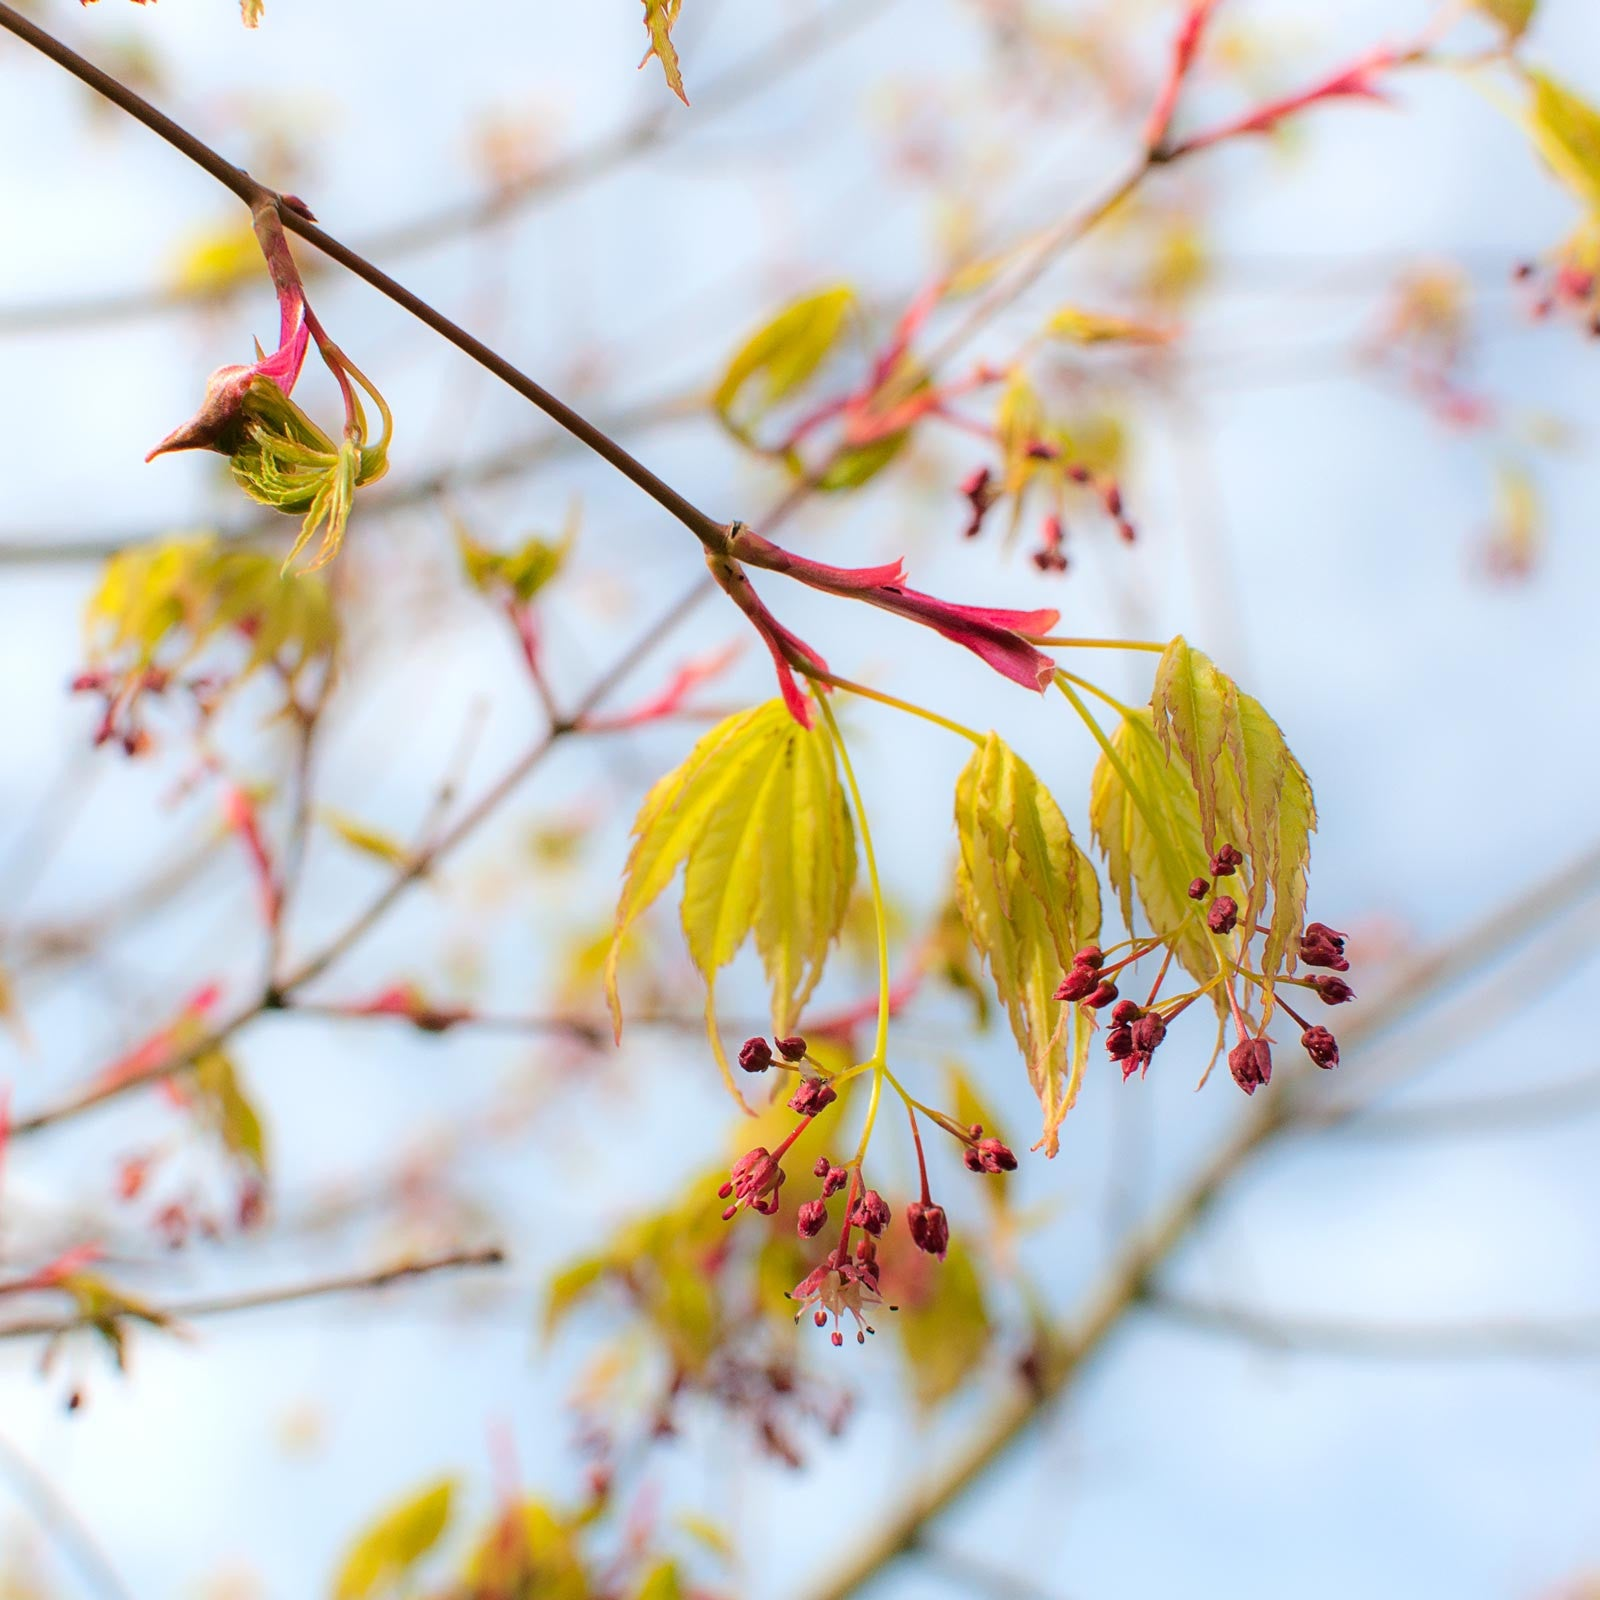 Acer leaves unfolding in spring